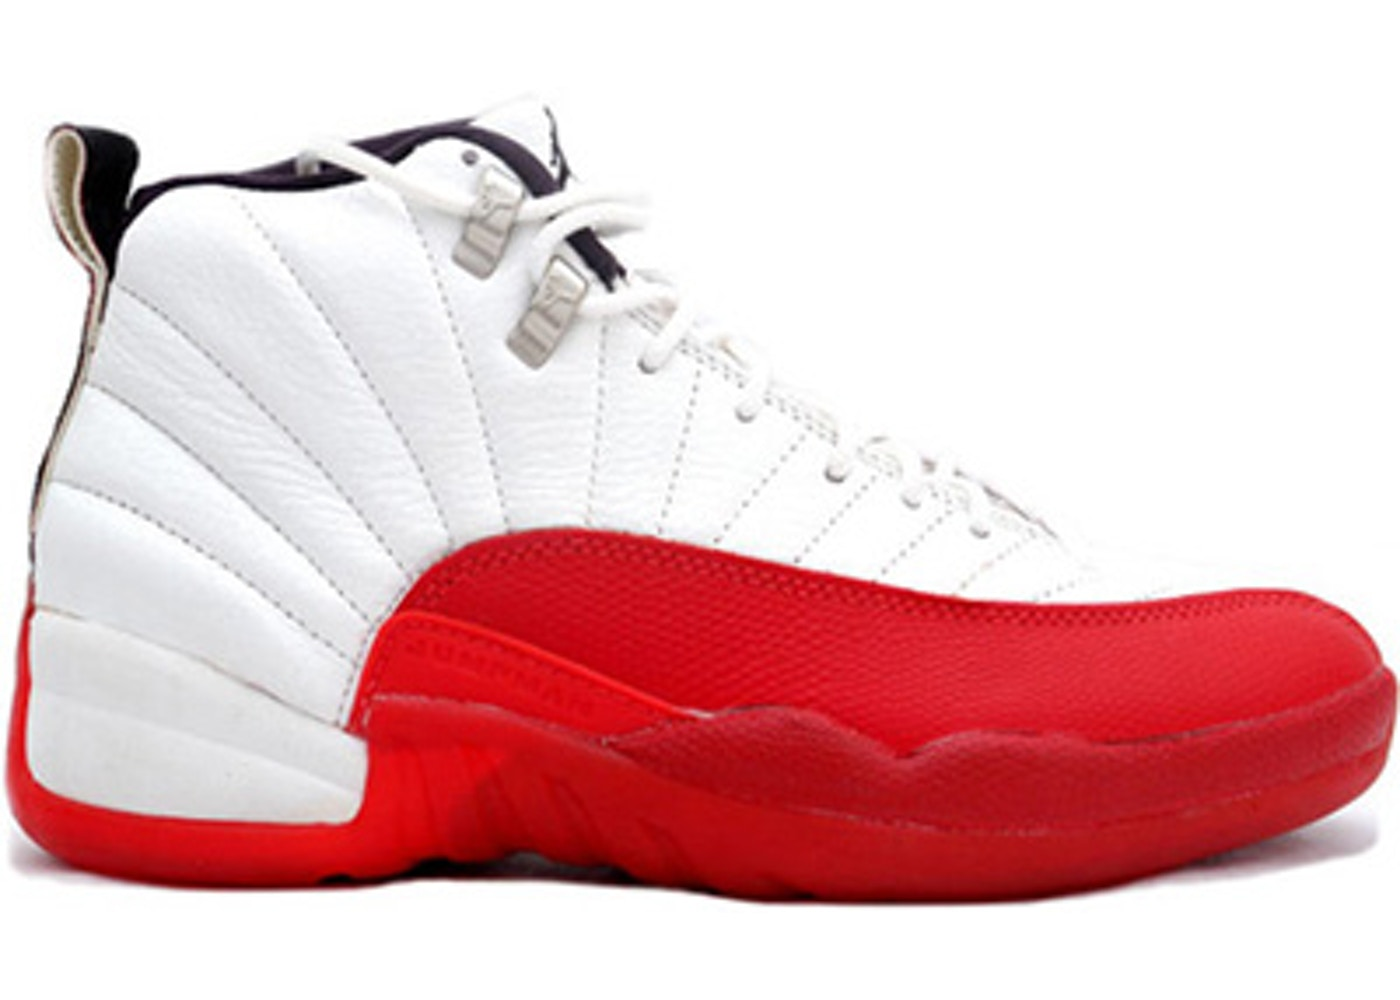 finest selection 2bacc 55112 Jordan 12 OG Cherry (1997)